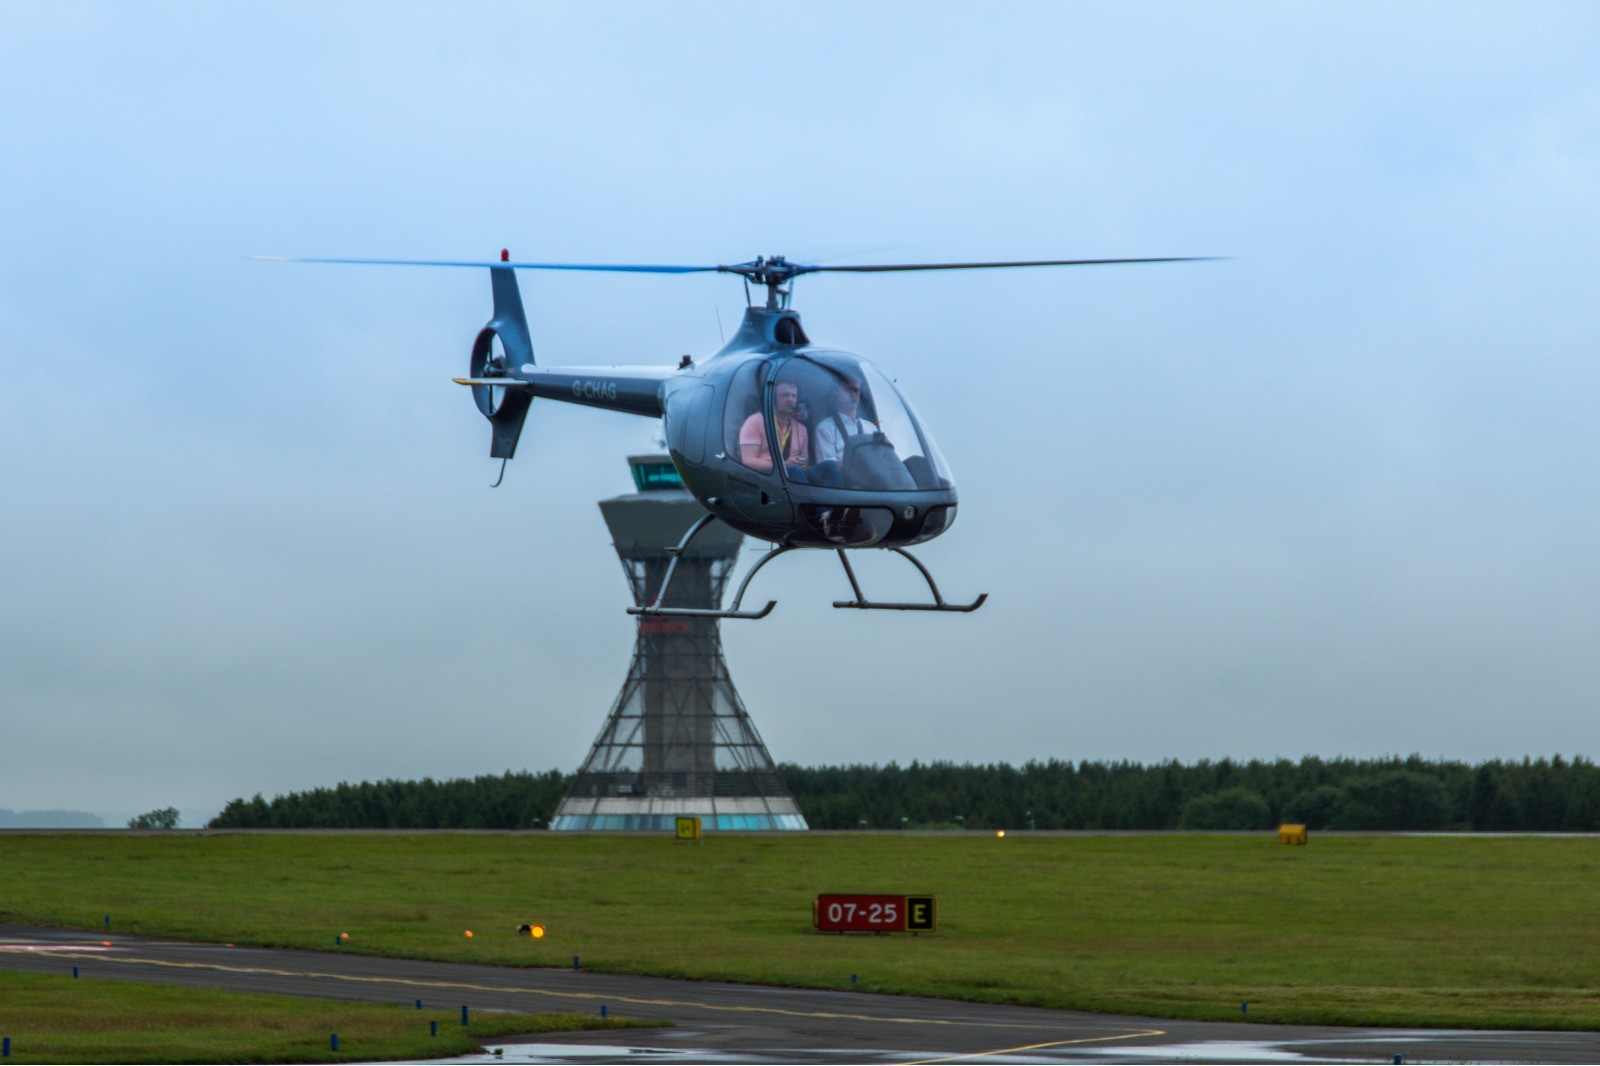 Helicopter Lessons Newcastle upon Tyne